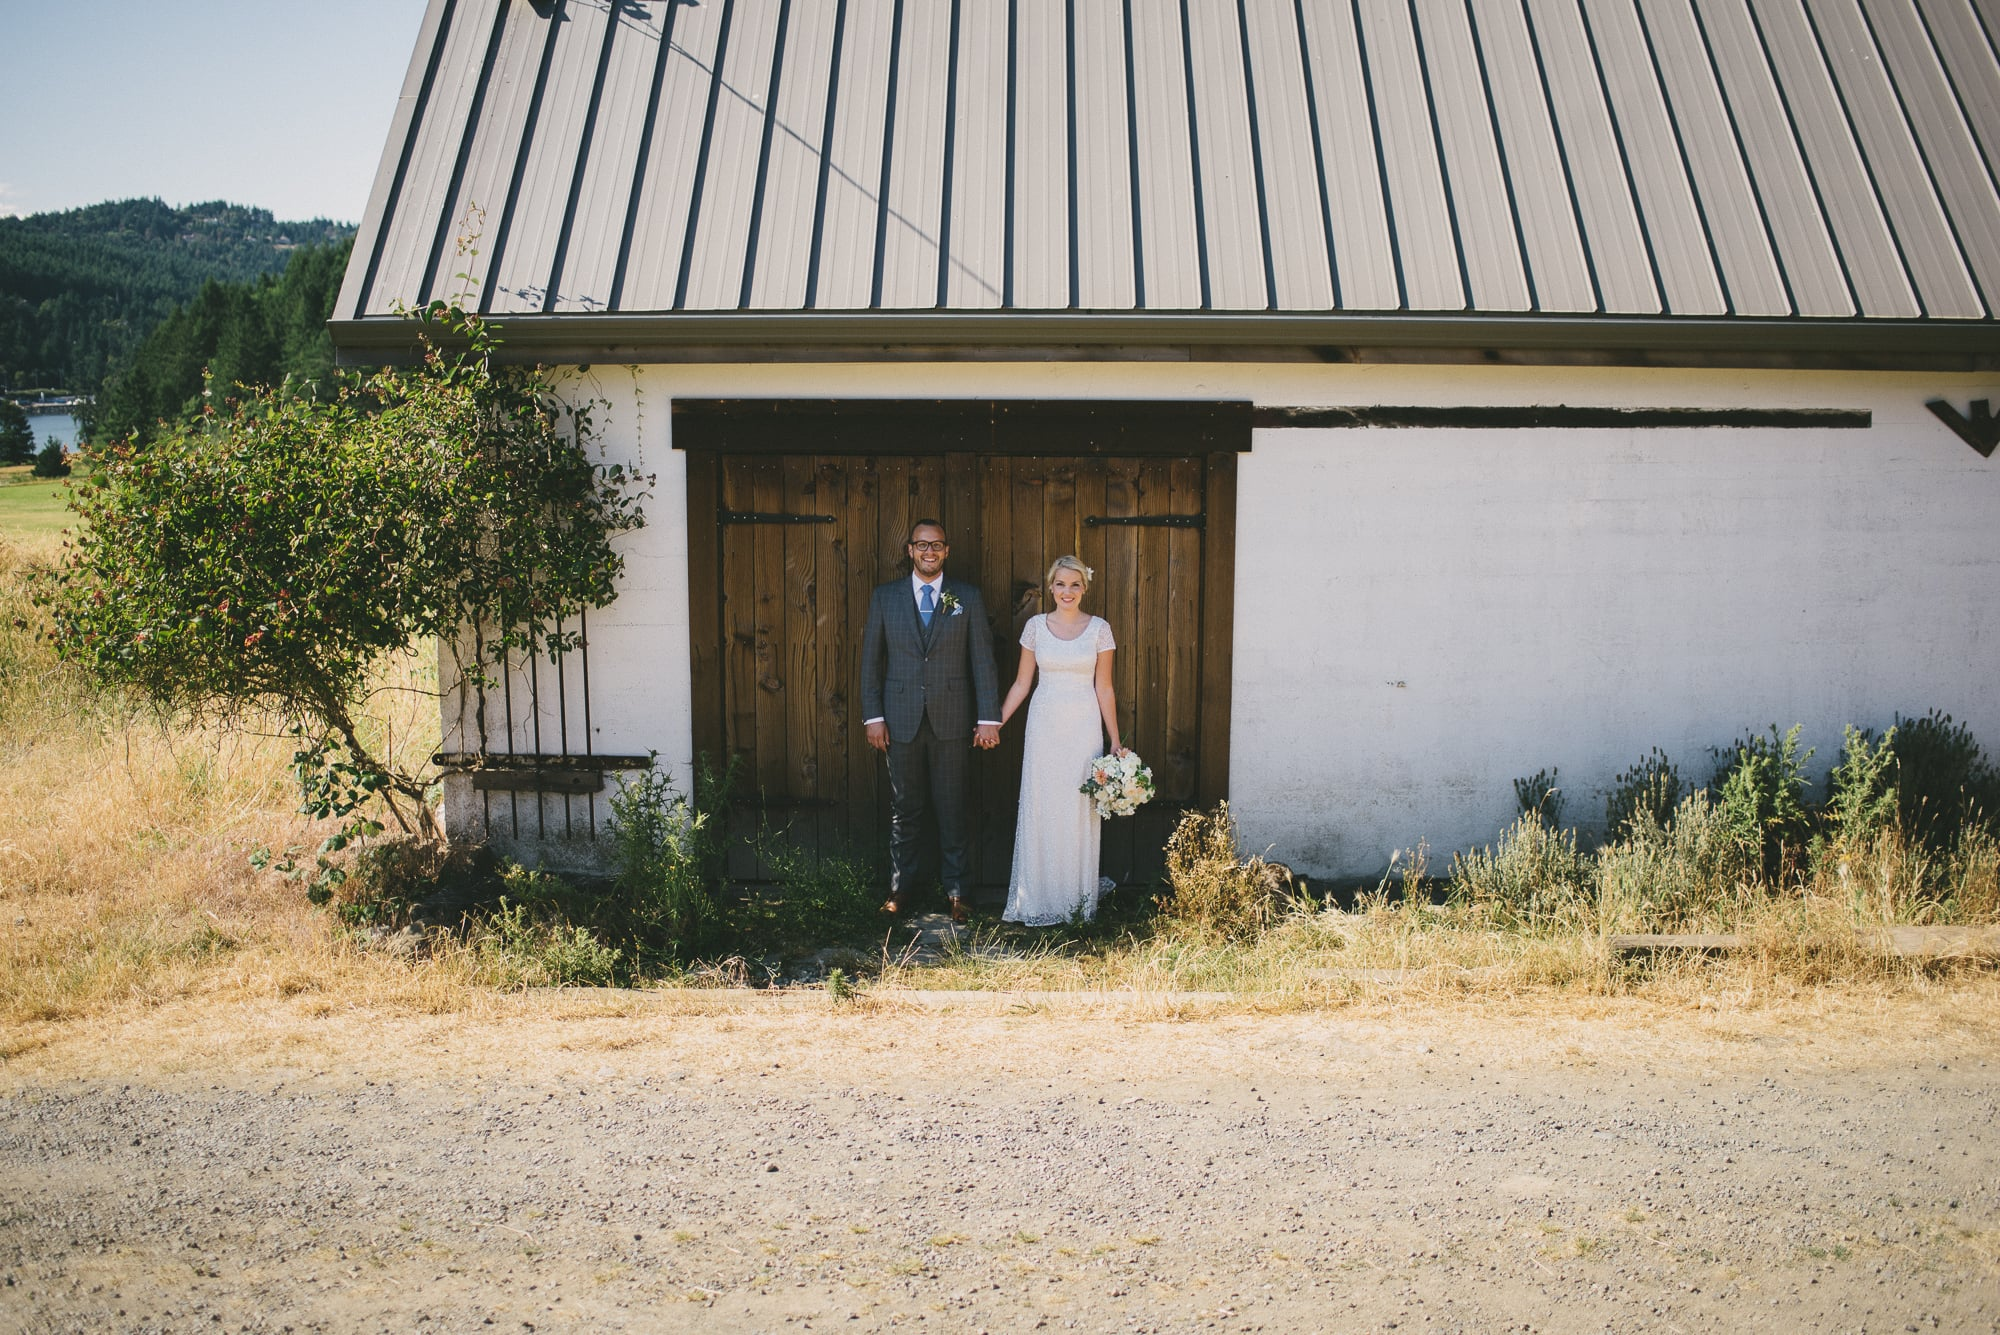 65-birdseye-cove-farm-wedding-sara-rogers-photography.jpg